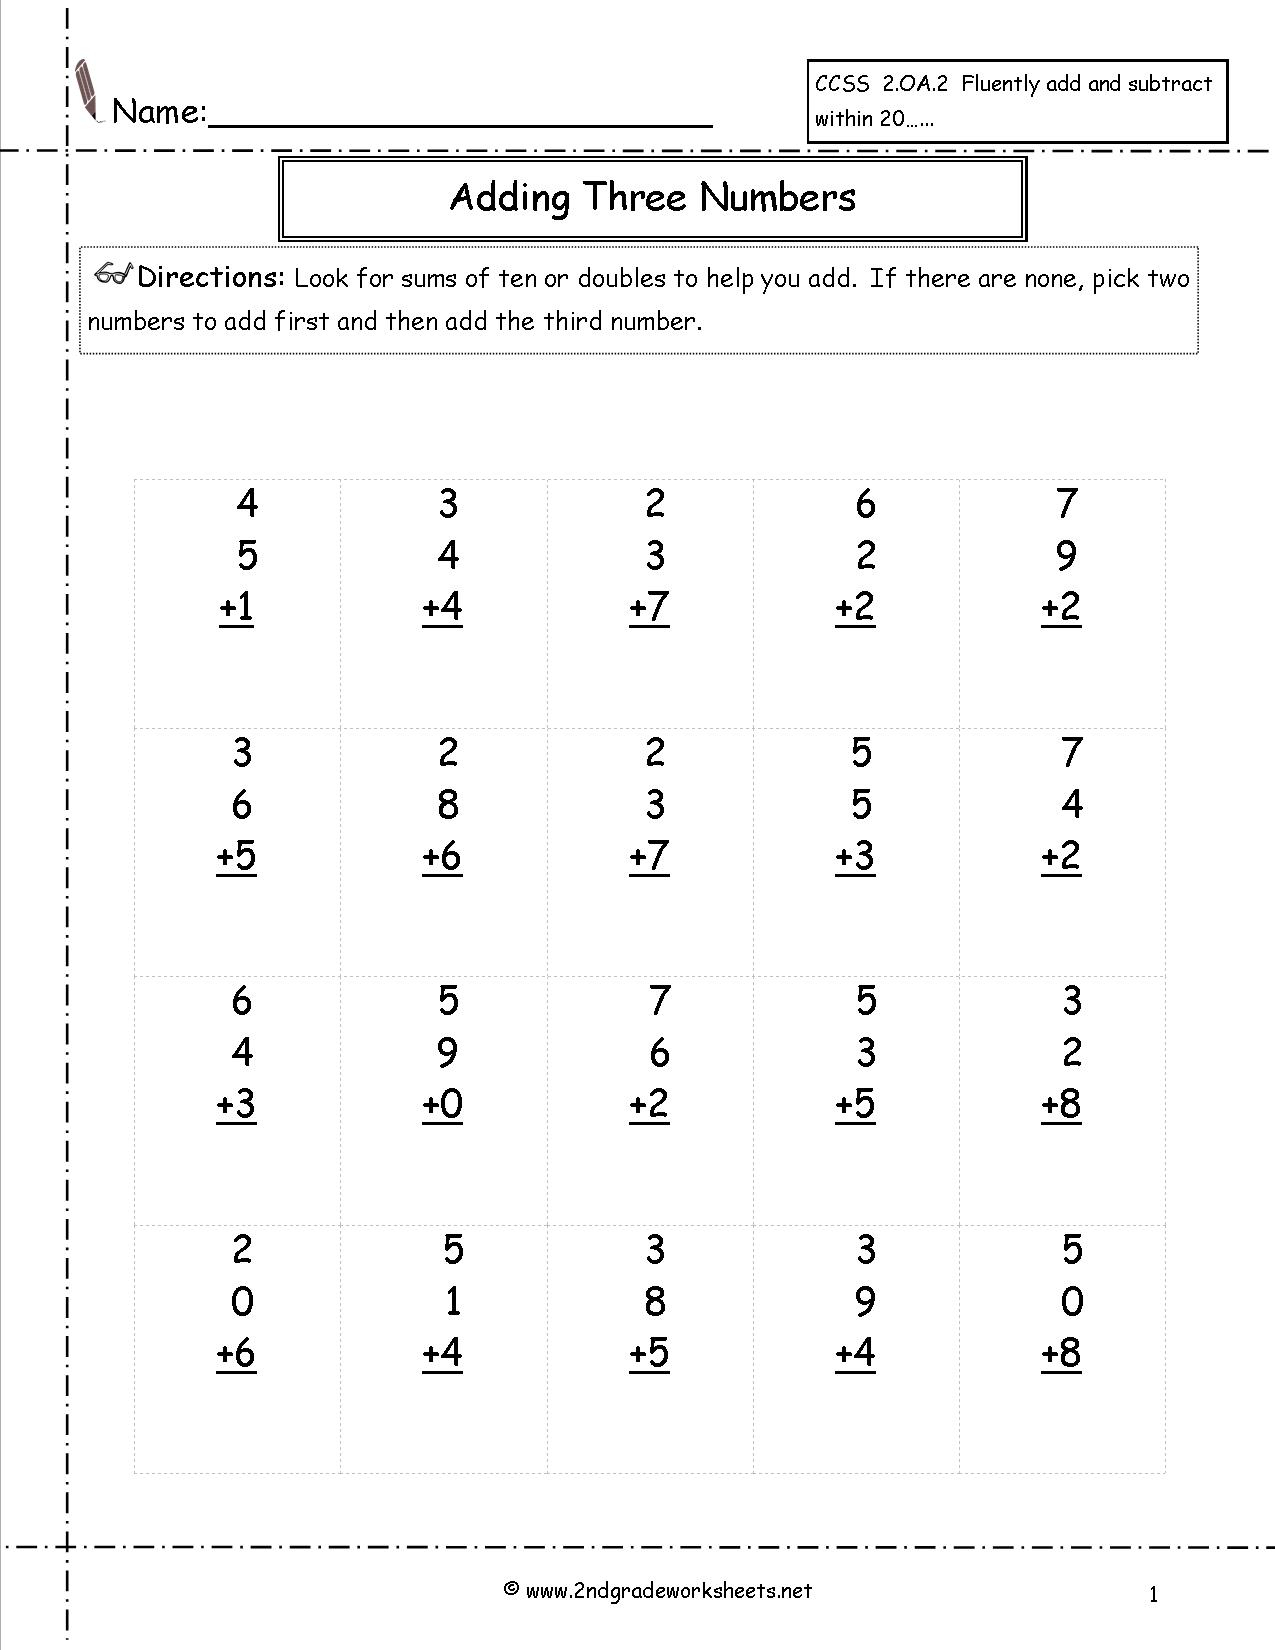 Free Math Worksheets And Printouts | Free Printable Second Grade Math Worksheets